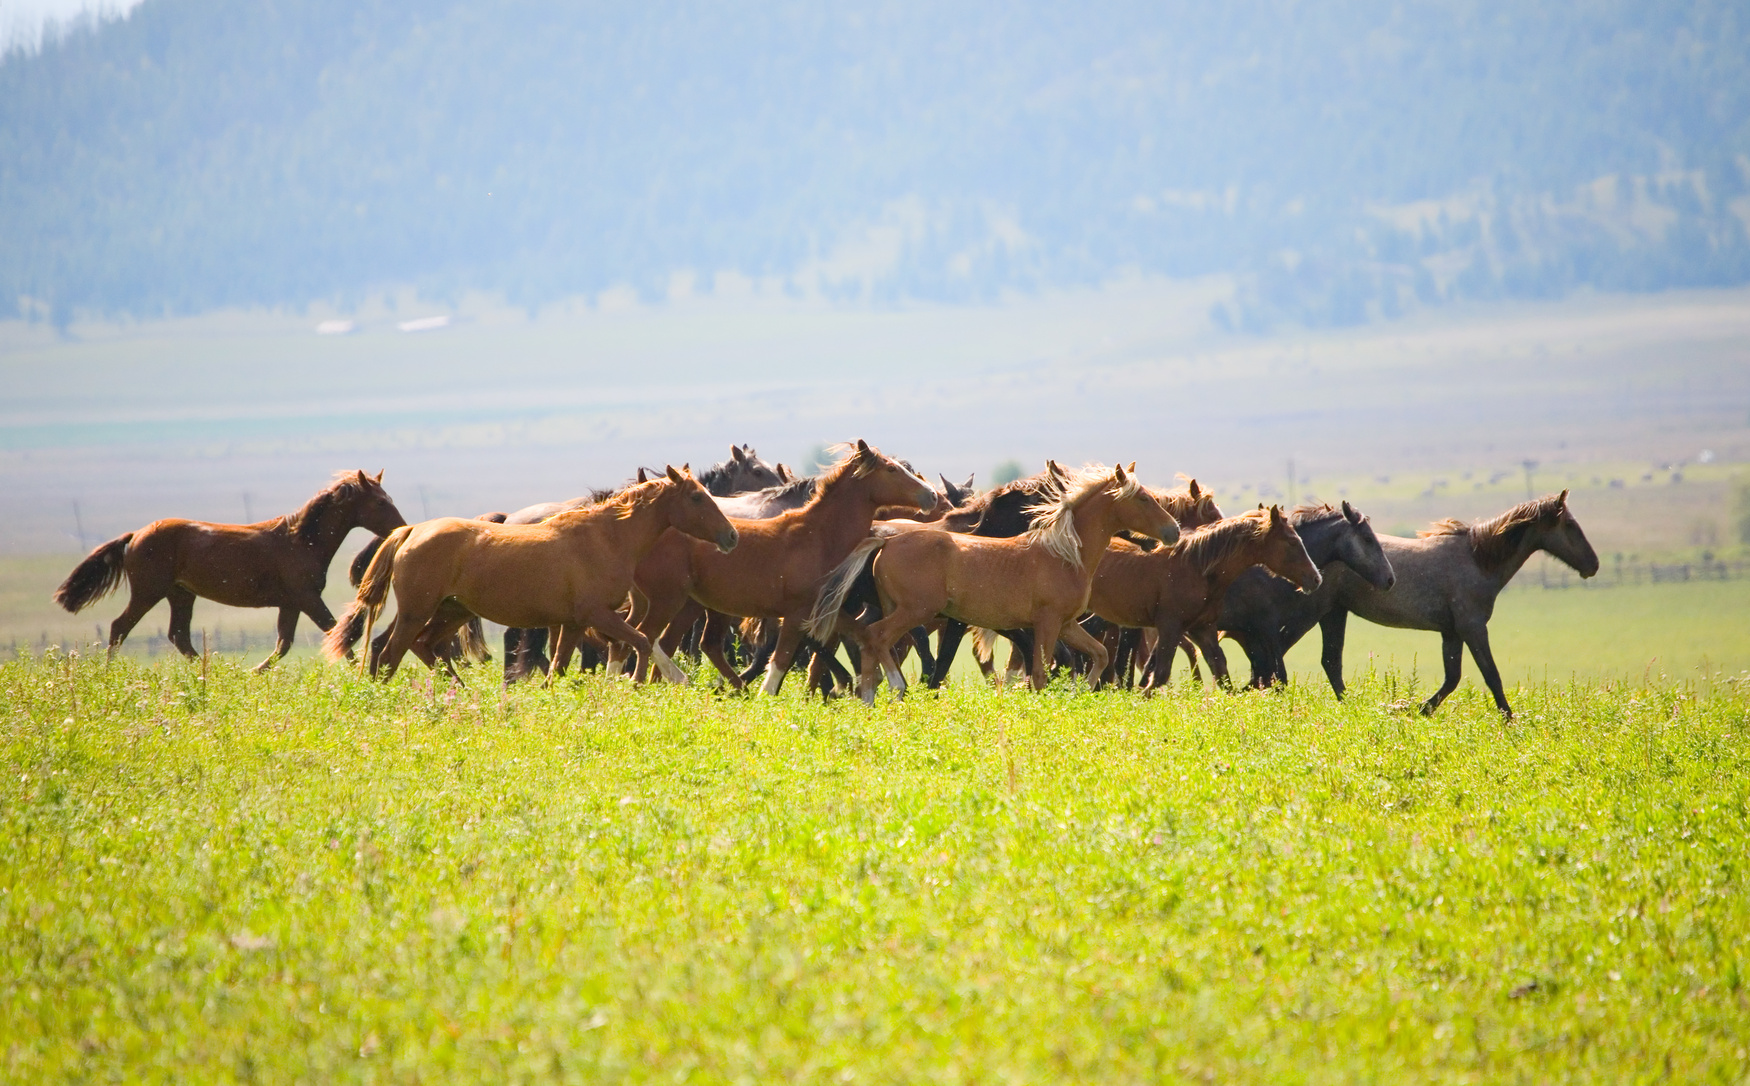 A herd of young horses on green pasture